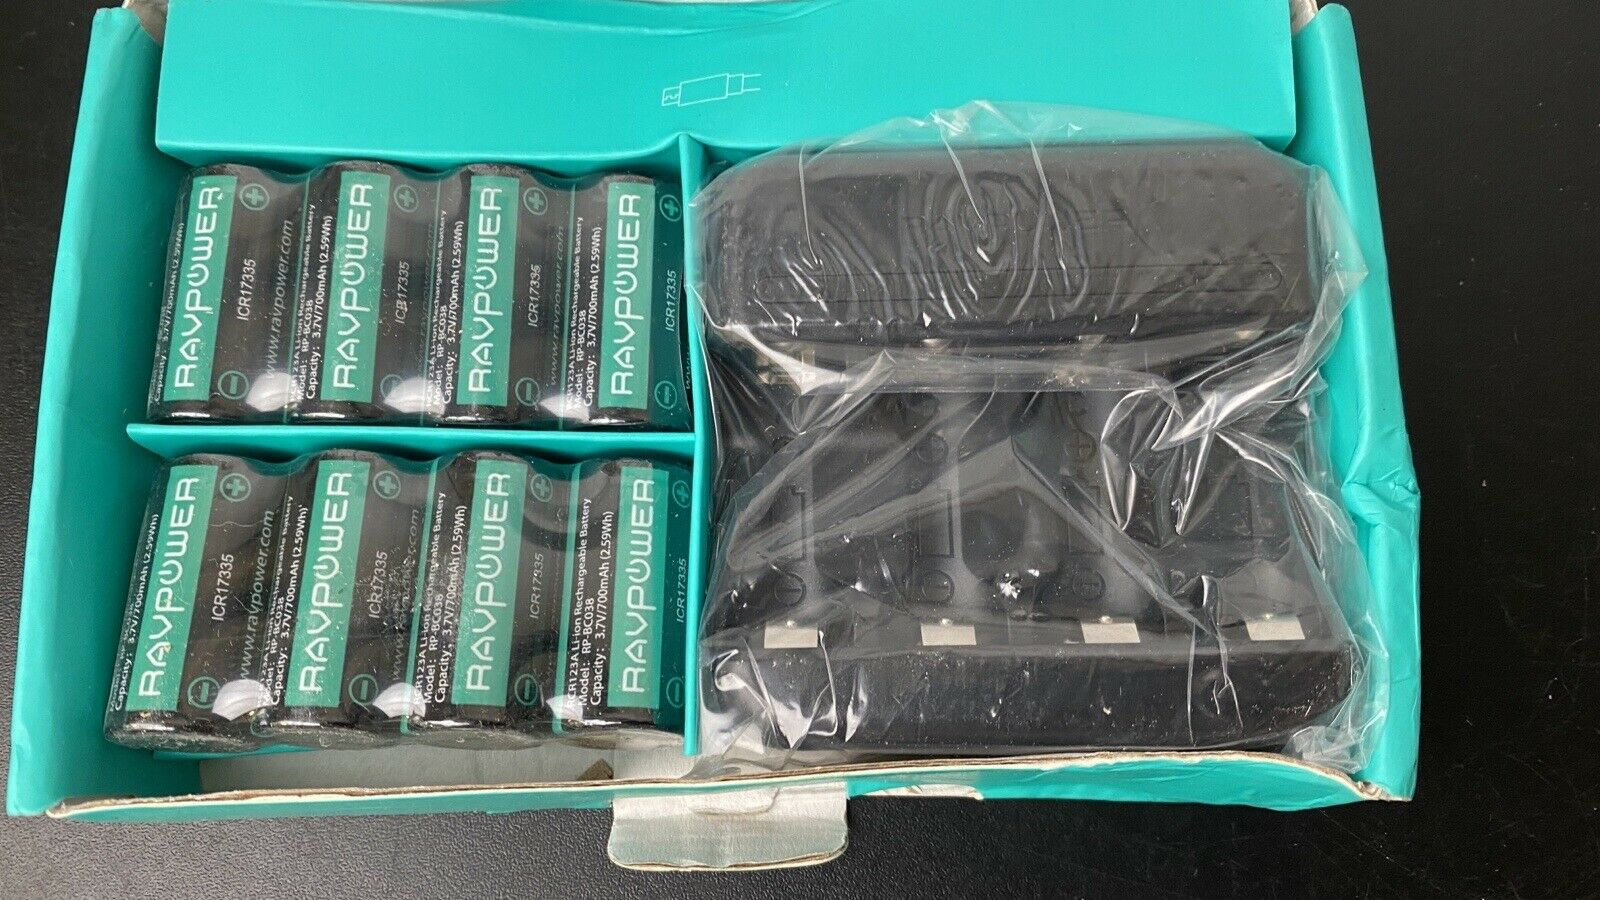 8 x Ravpower RCR123A Rechargeable Batteries with USB Charger Compartment